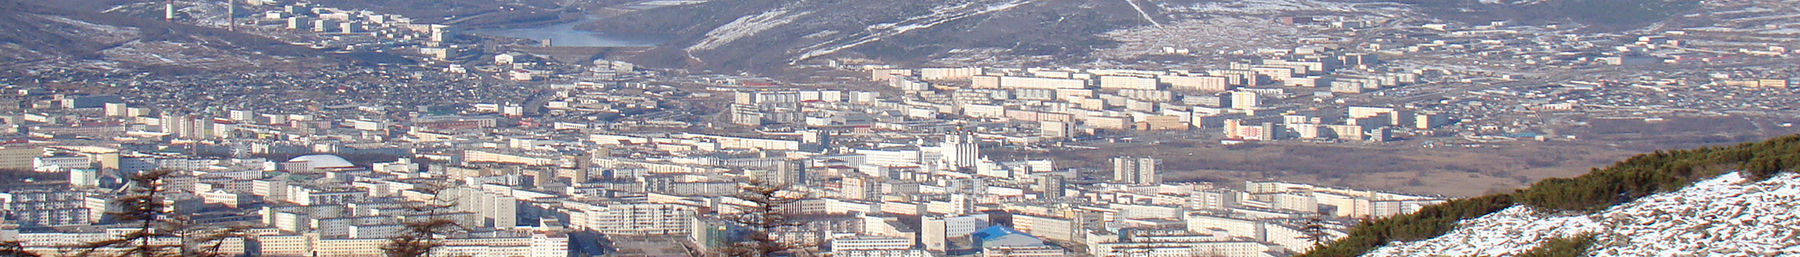 Magadan as seen from surrounding mountains